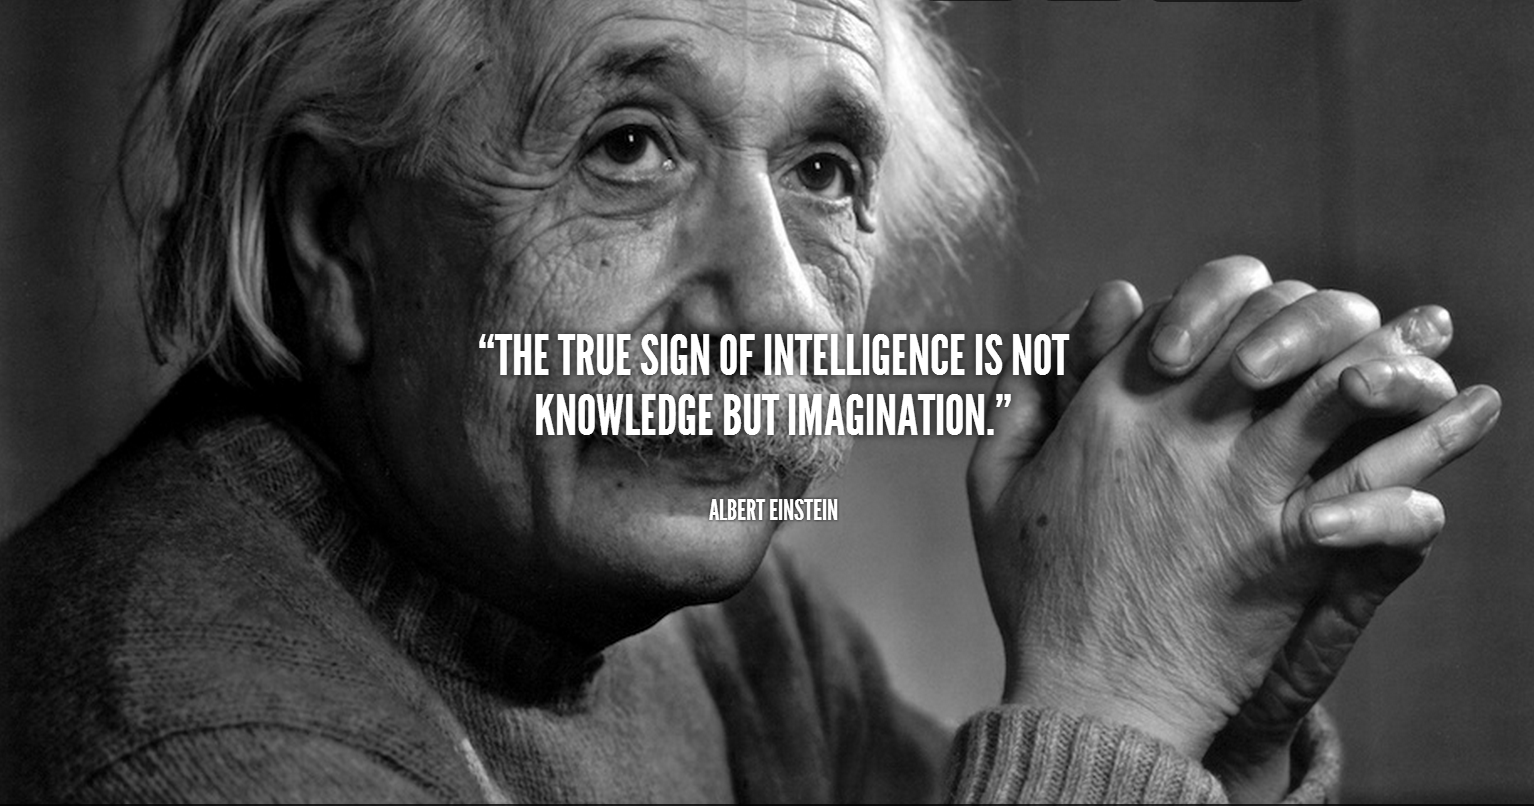 The true sign of intelligence is not knowledge but imagination. Albert Einstein Quote.